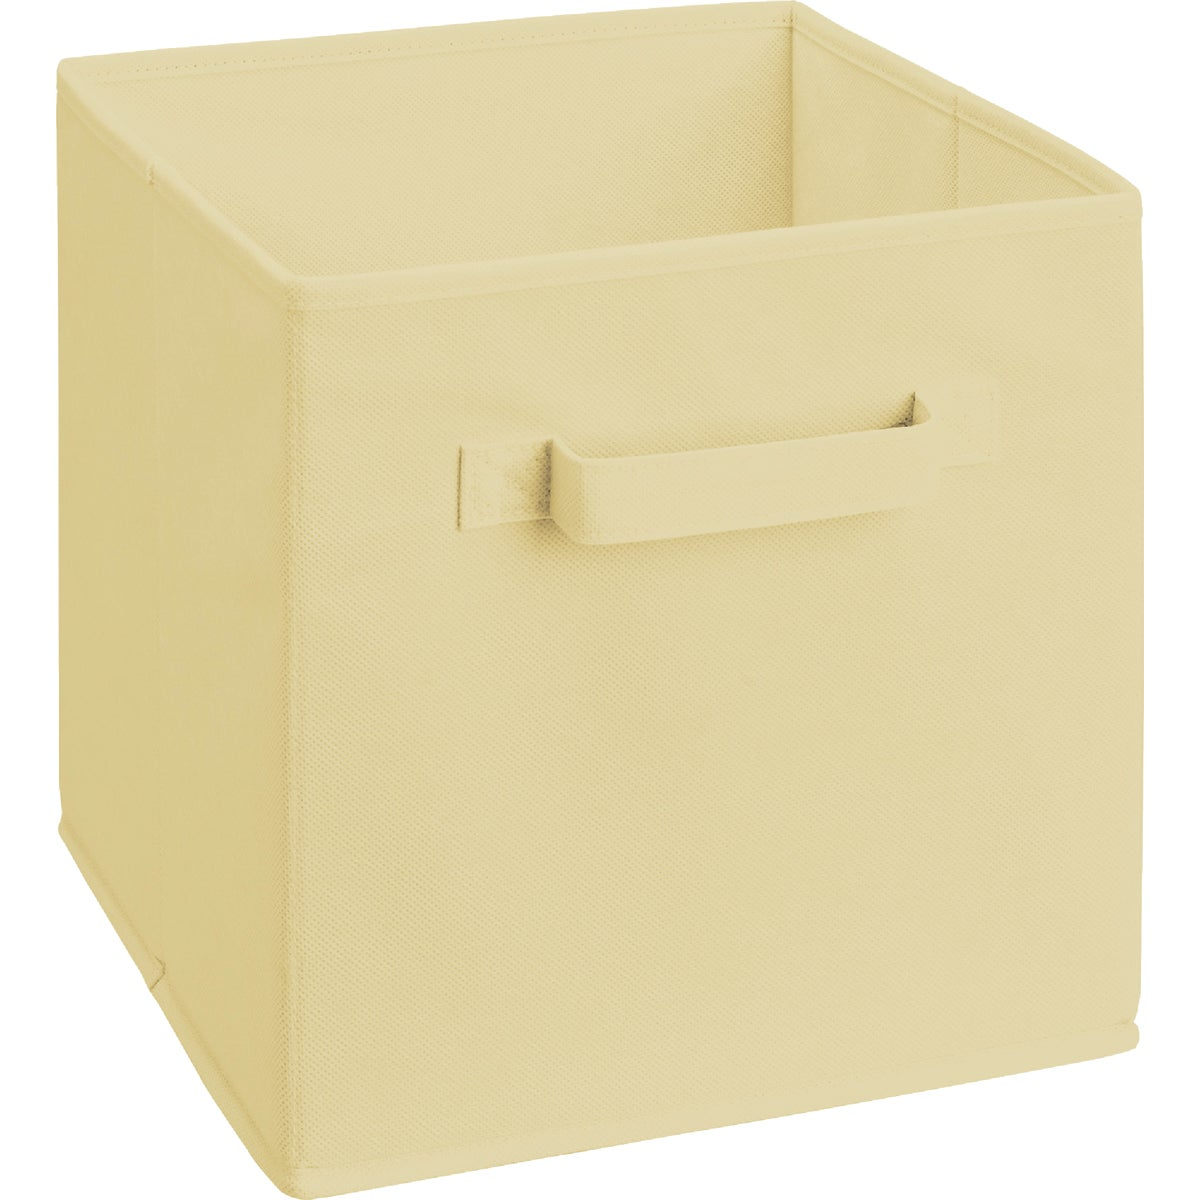 ClosetMaid Cubeicals Fabric Drawer, 87700